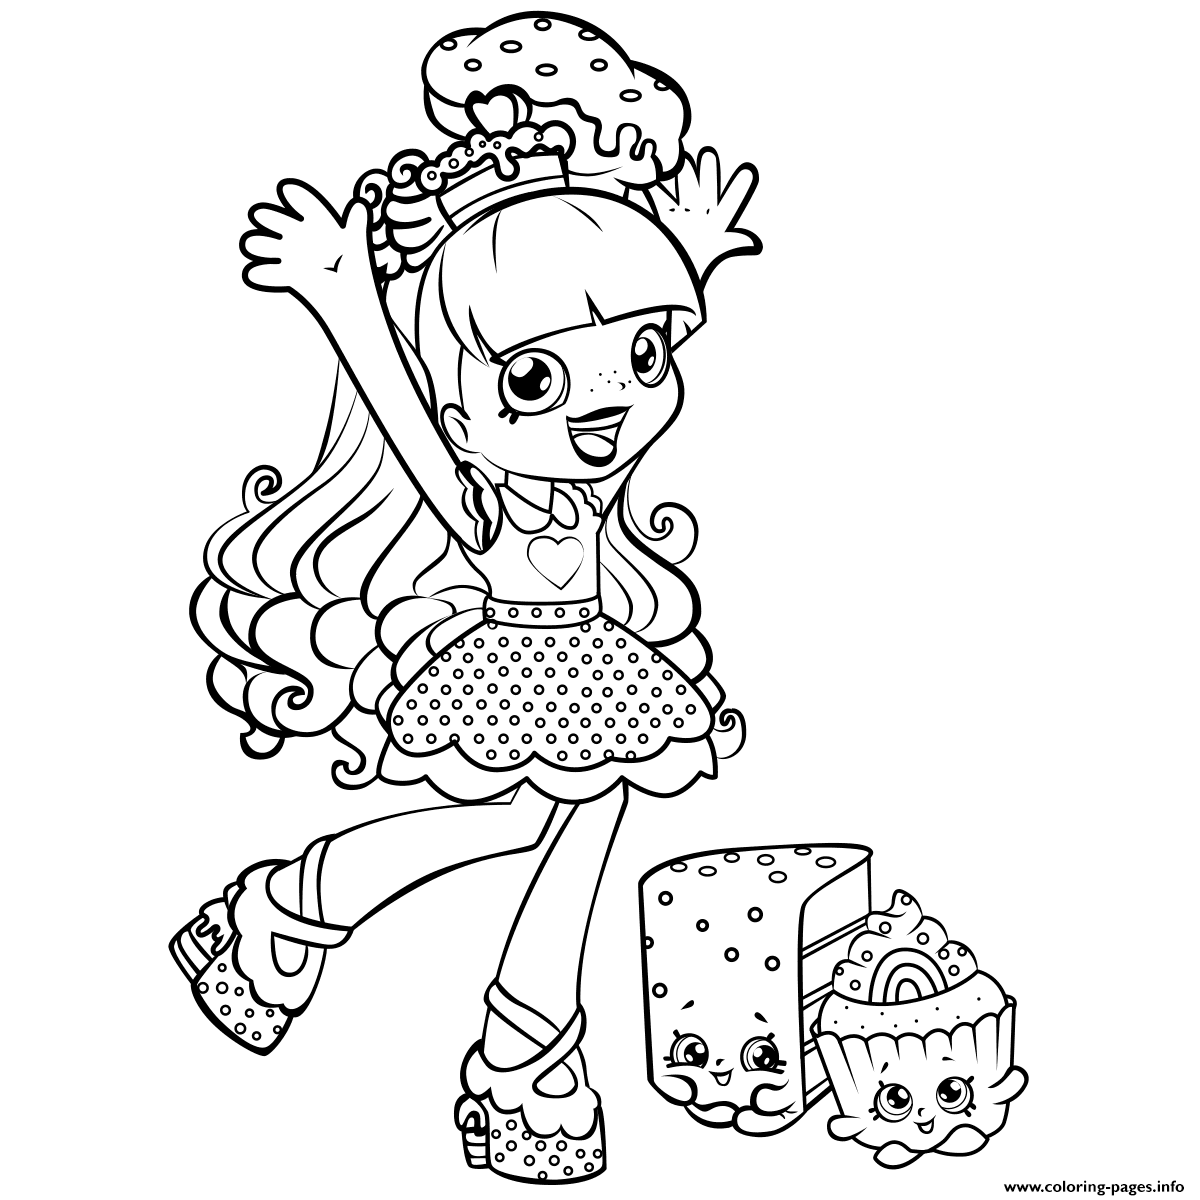 shopkins shoppie is happy cupecake colouring print shopkins shoppie is happy cupecake coloring pages